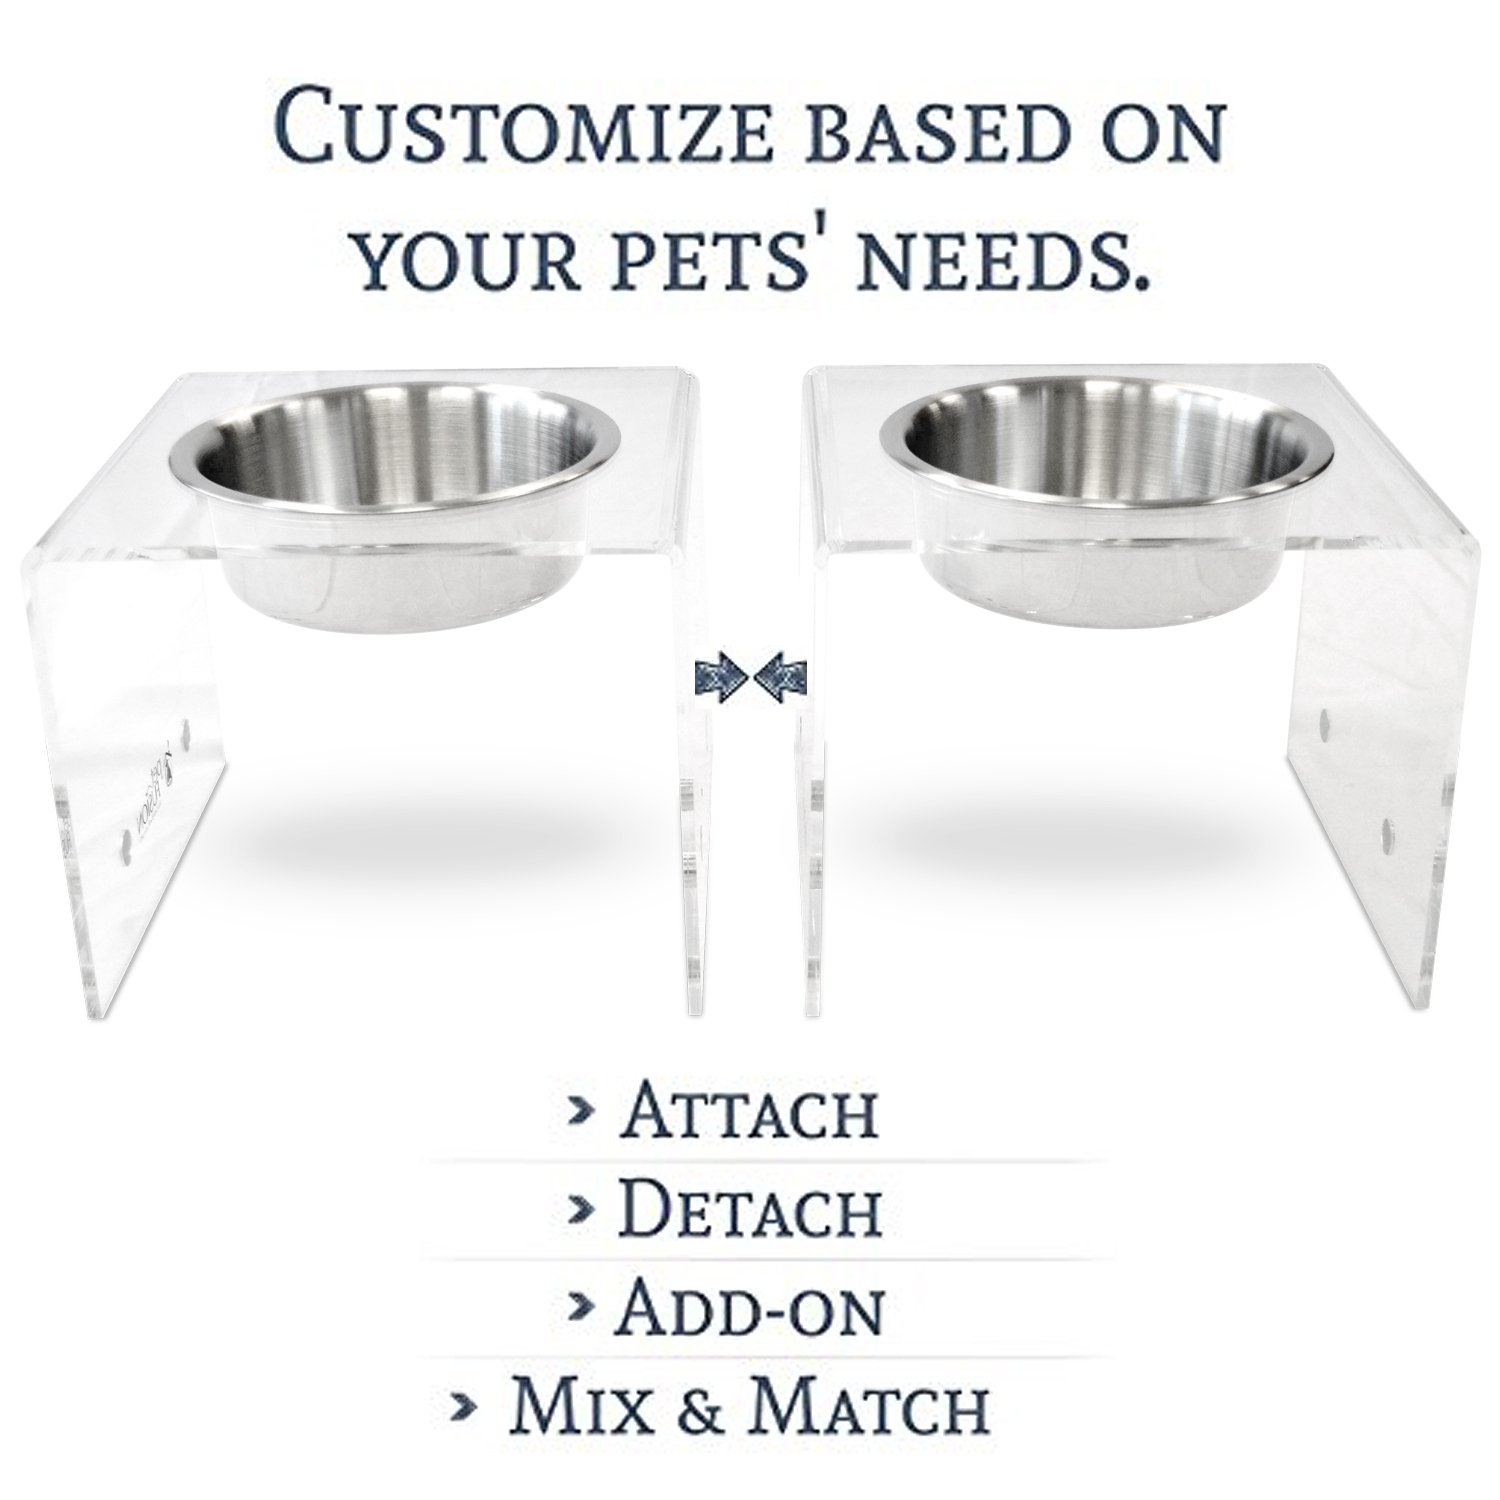 PetFusion Elevated SinglePod Magnetic Dog Feeder [Acrylic w/Embedded Magnets; Attach, Detach]. (Tall, Set of 2), 11 x 11 x 9 Each by PetFusion